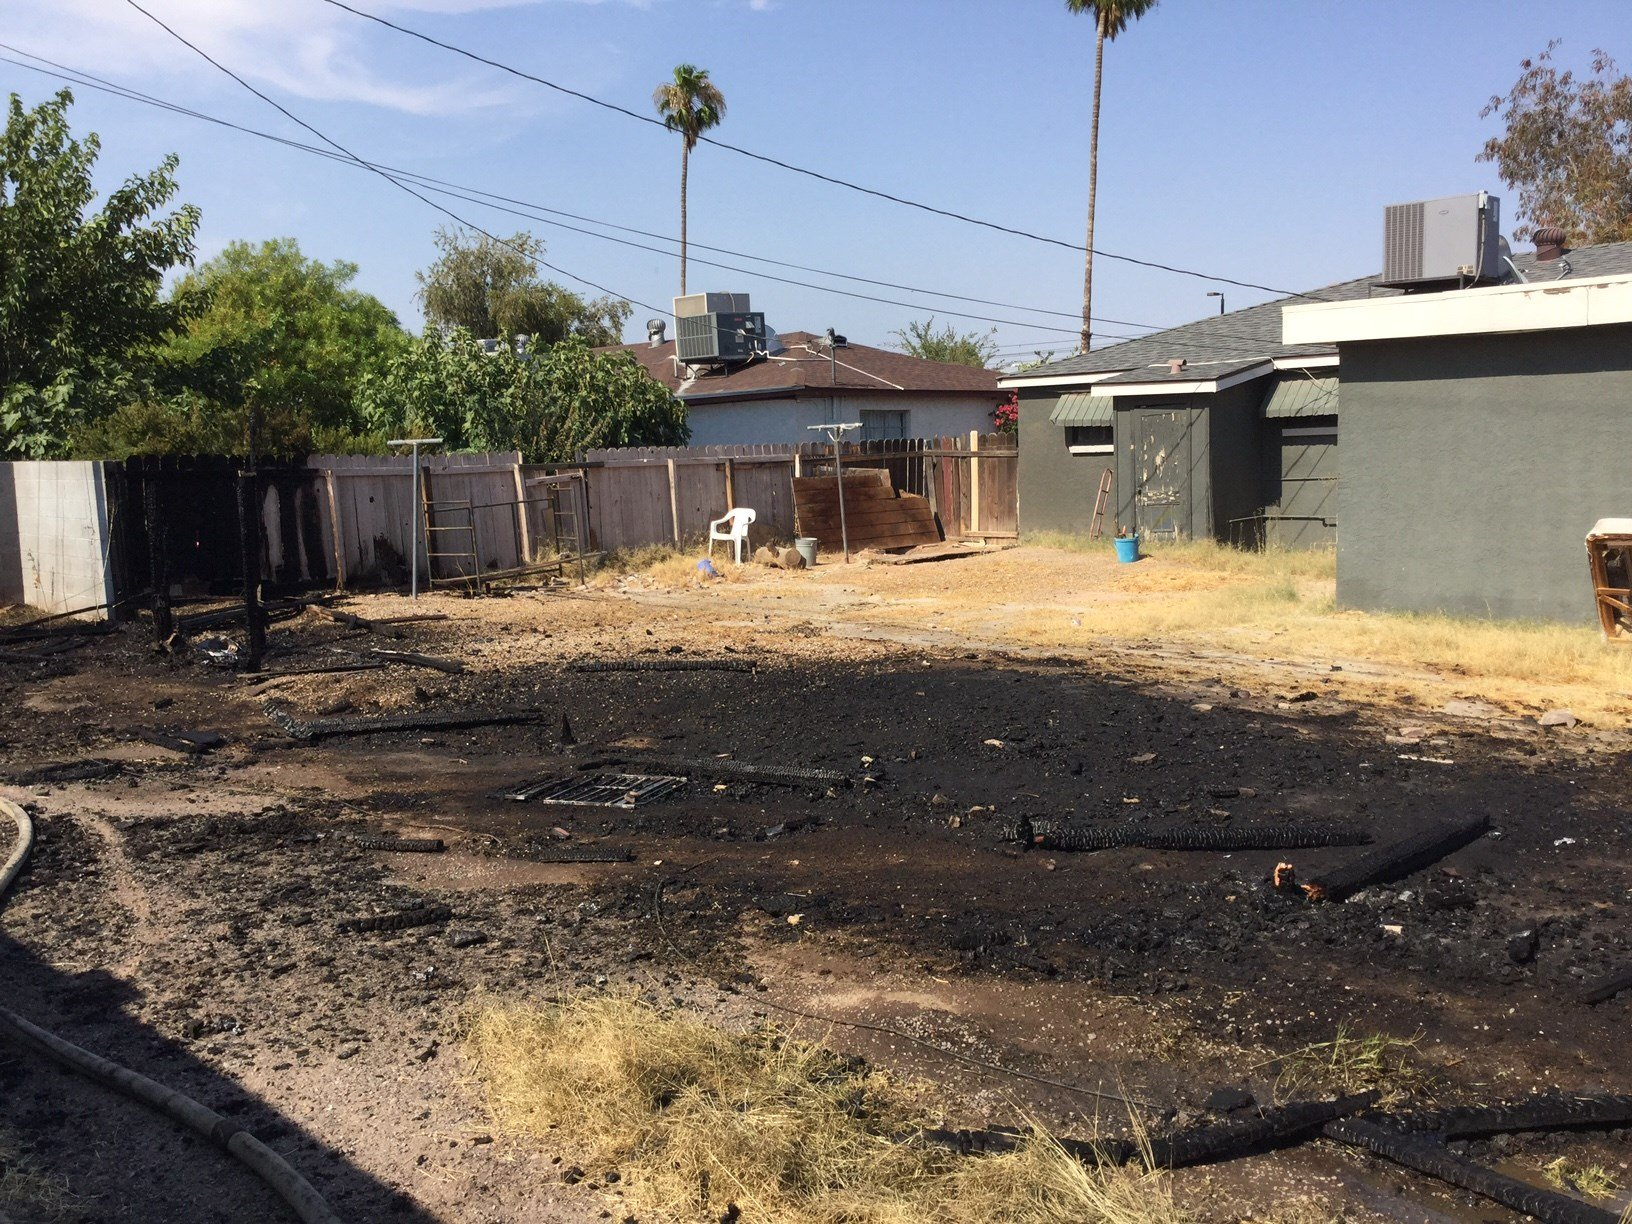 The ground is scared after a fence fire Saturday. (24 June 2017) [Source: 3TV/CBS5]